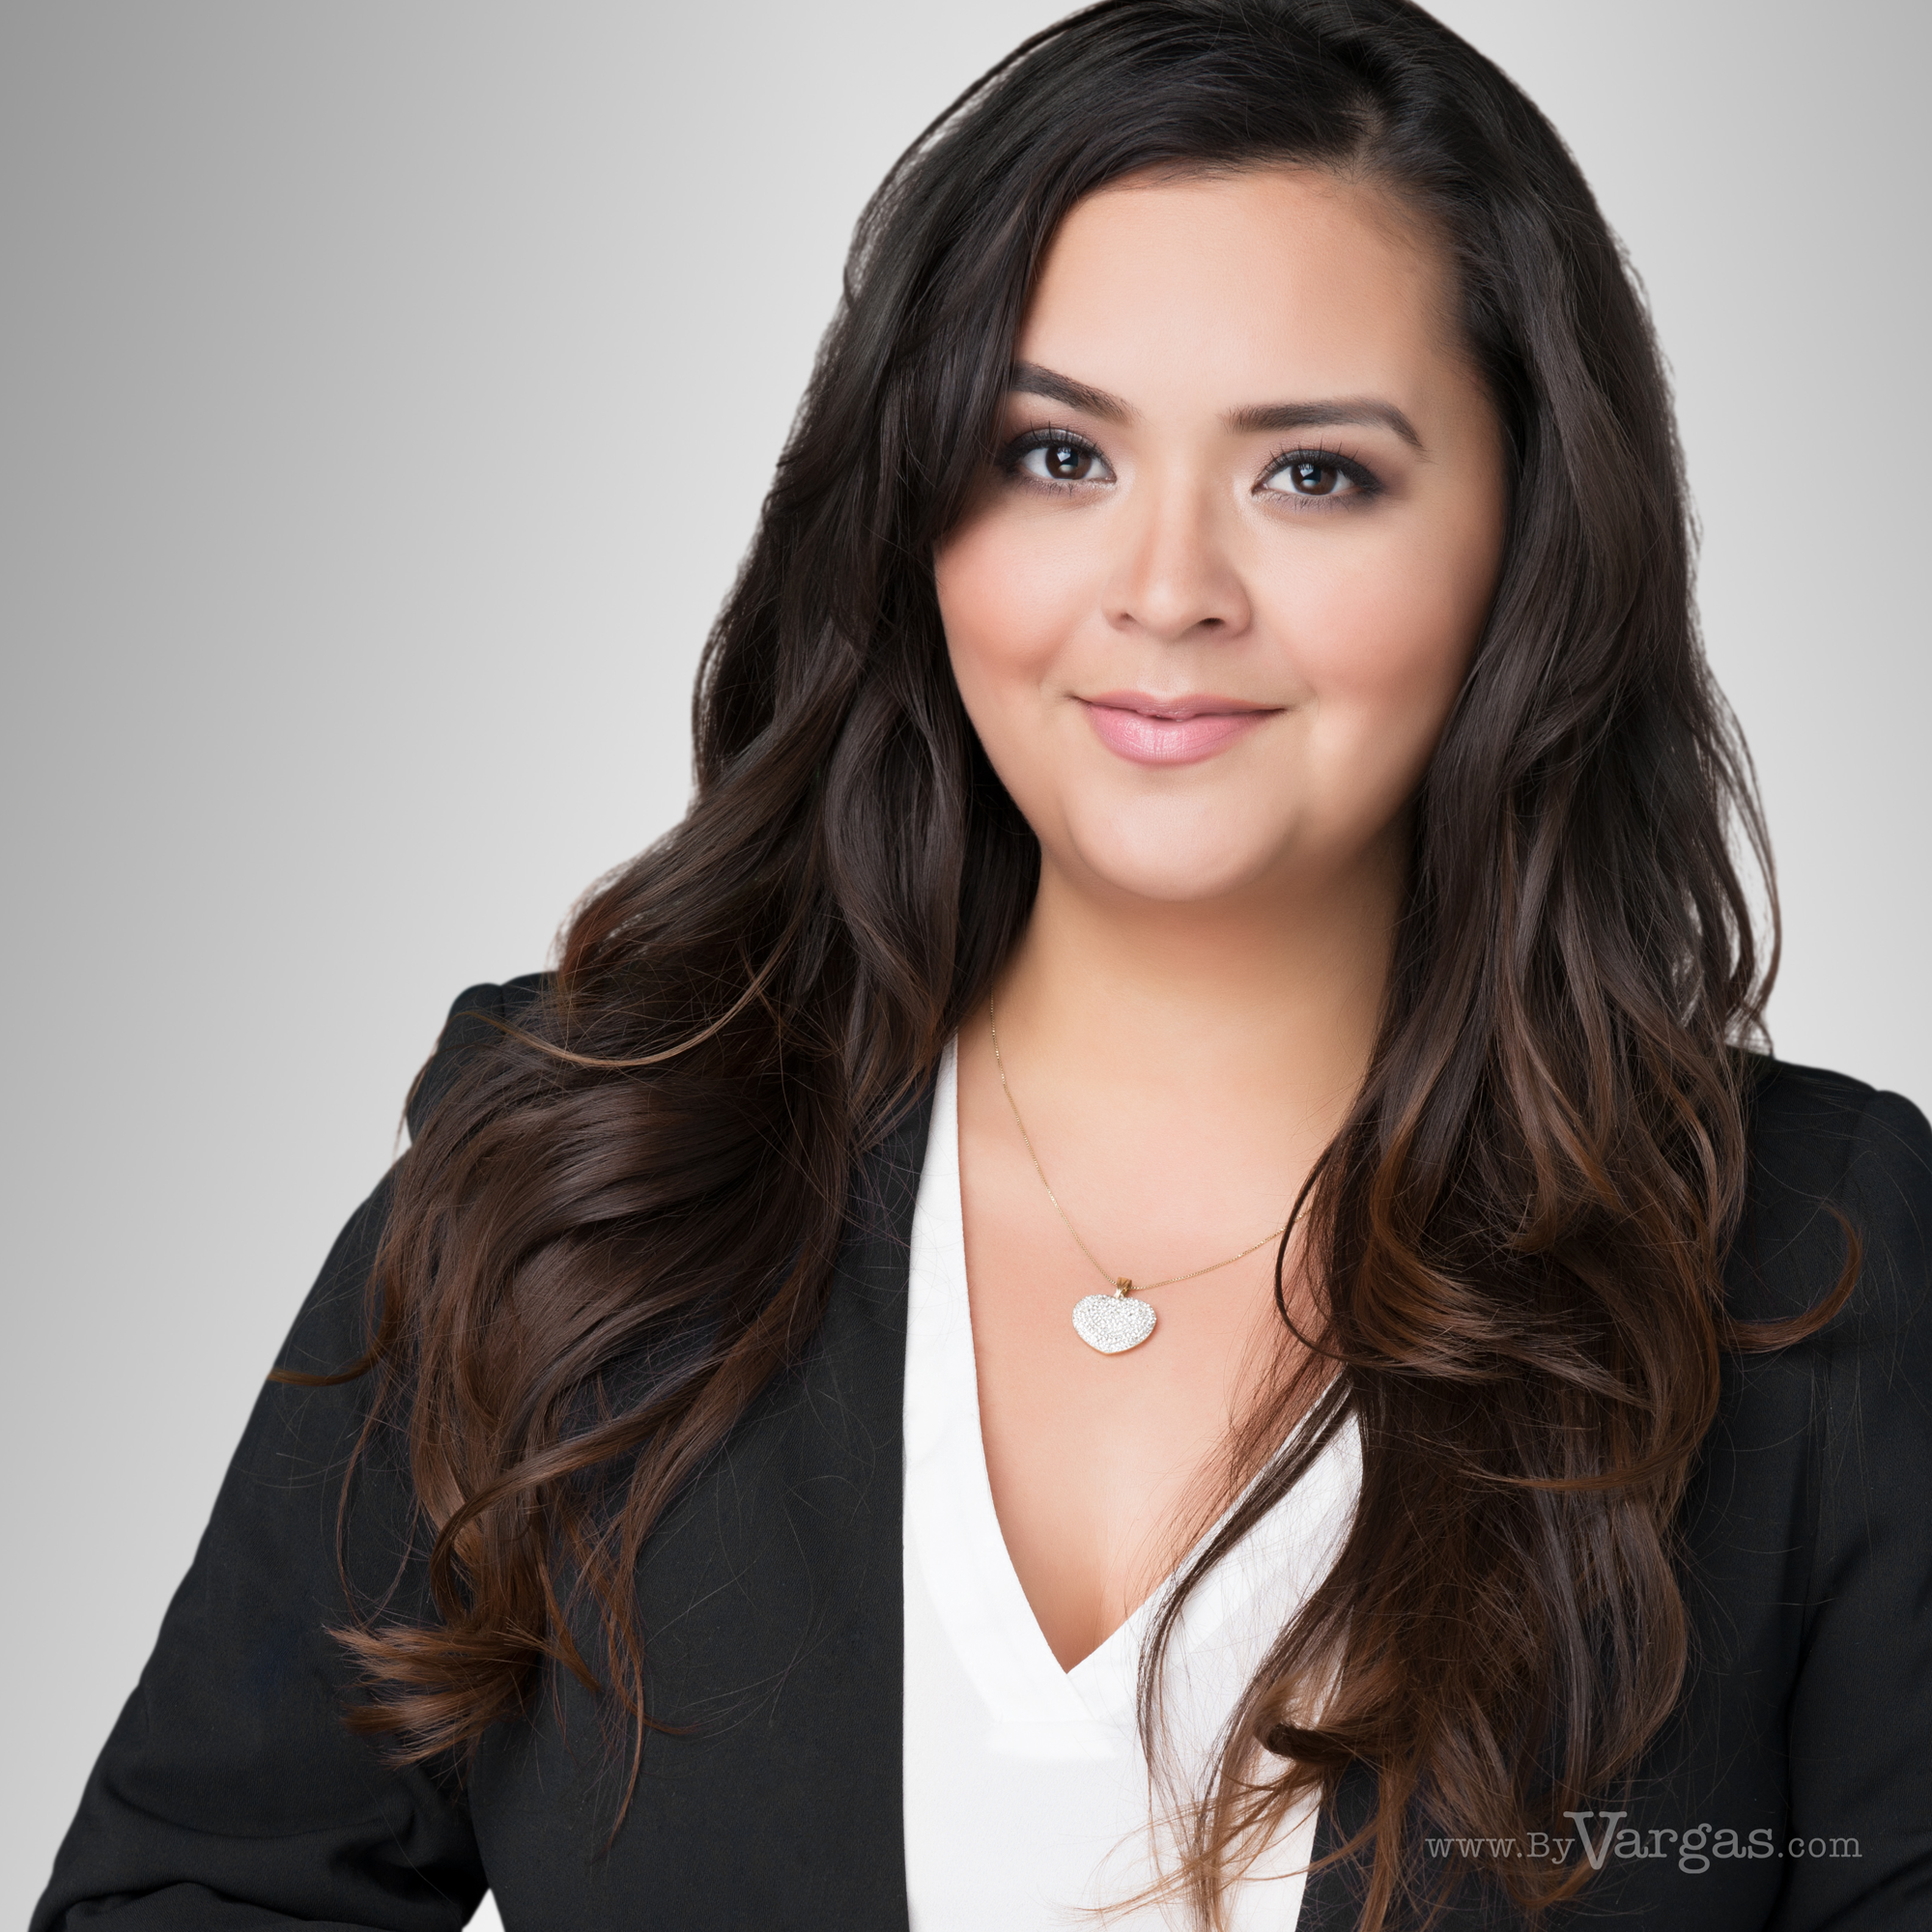 Desiree-Estorga-head-shot-realtor-loan-officer.png